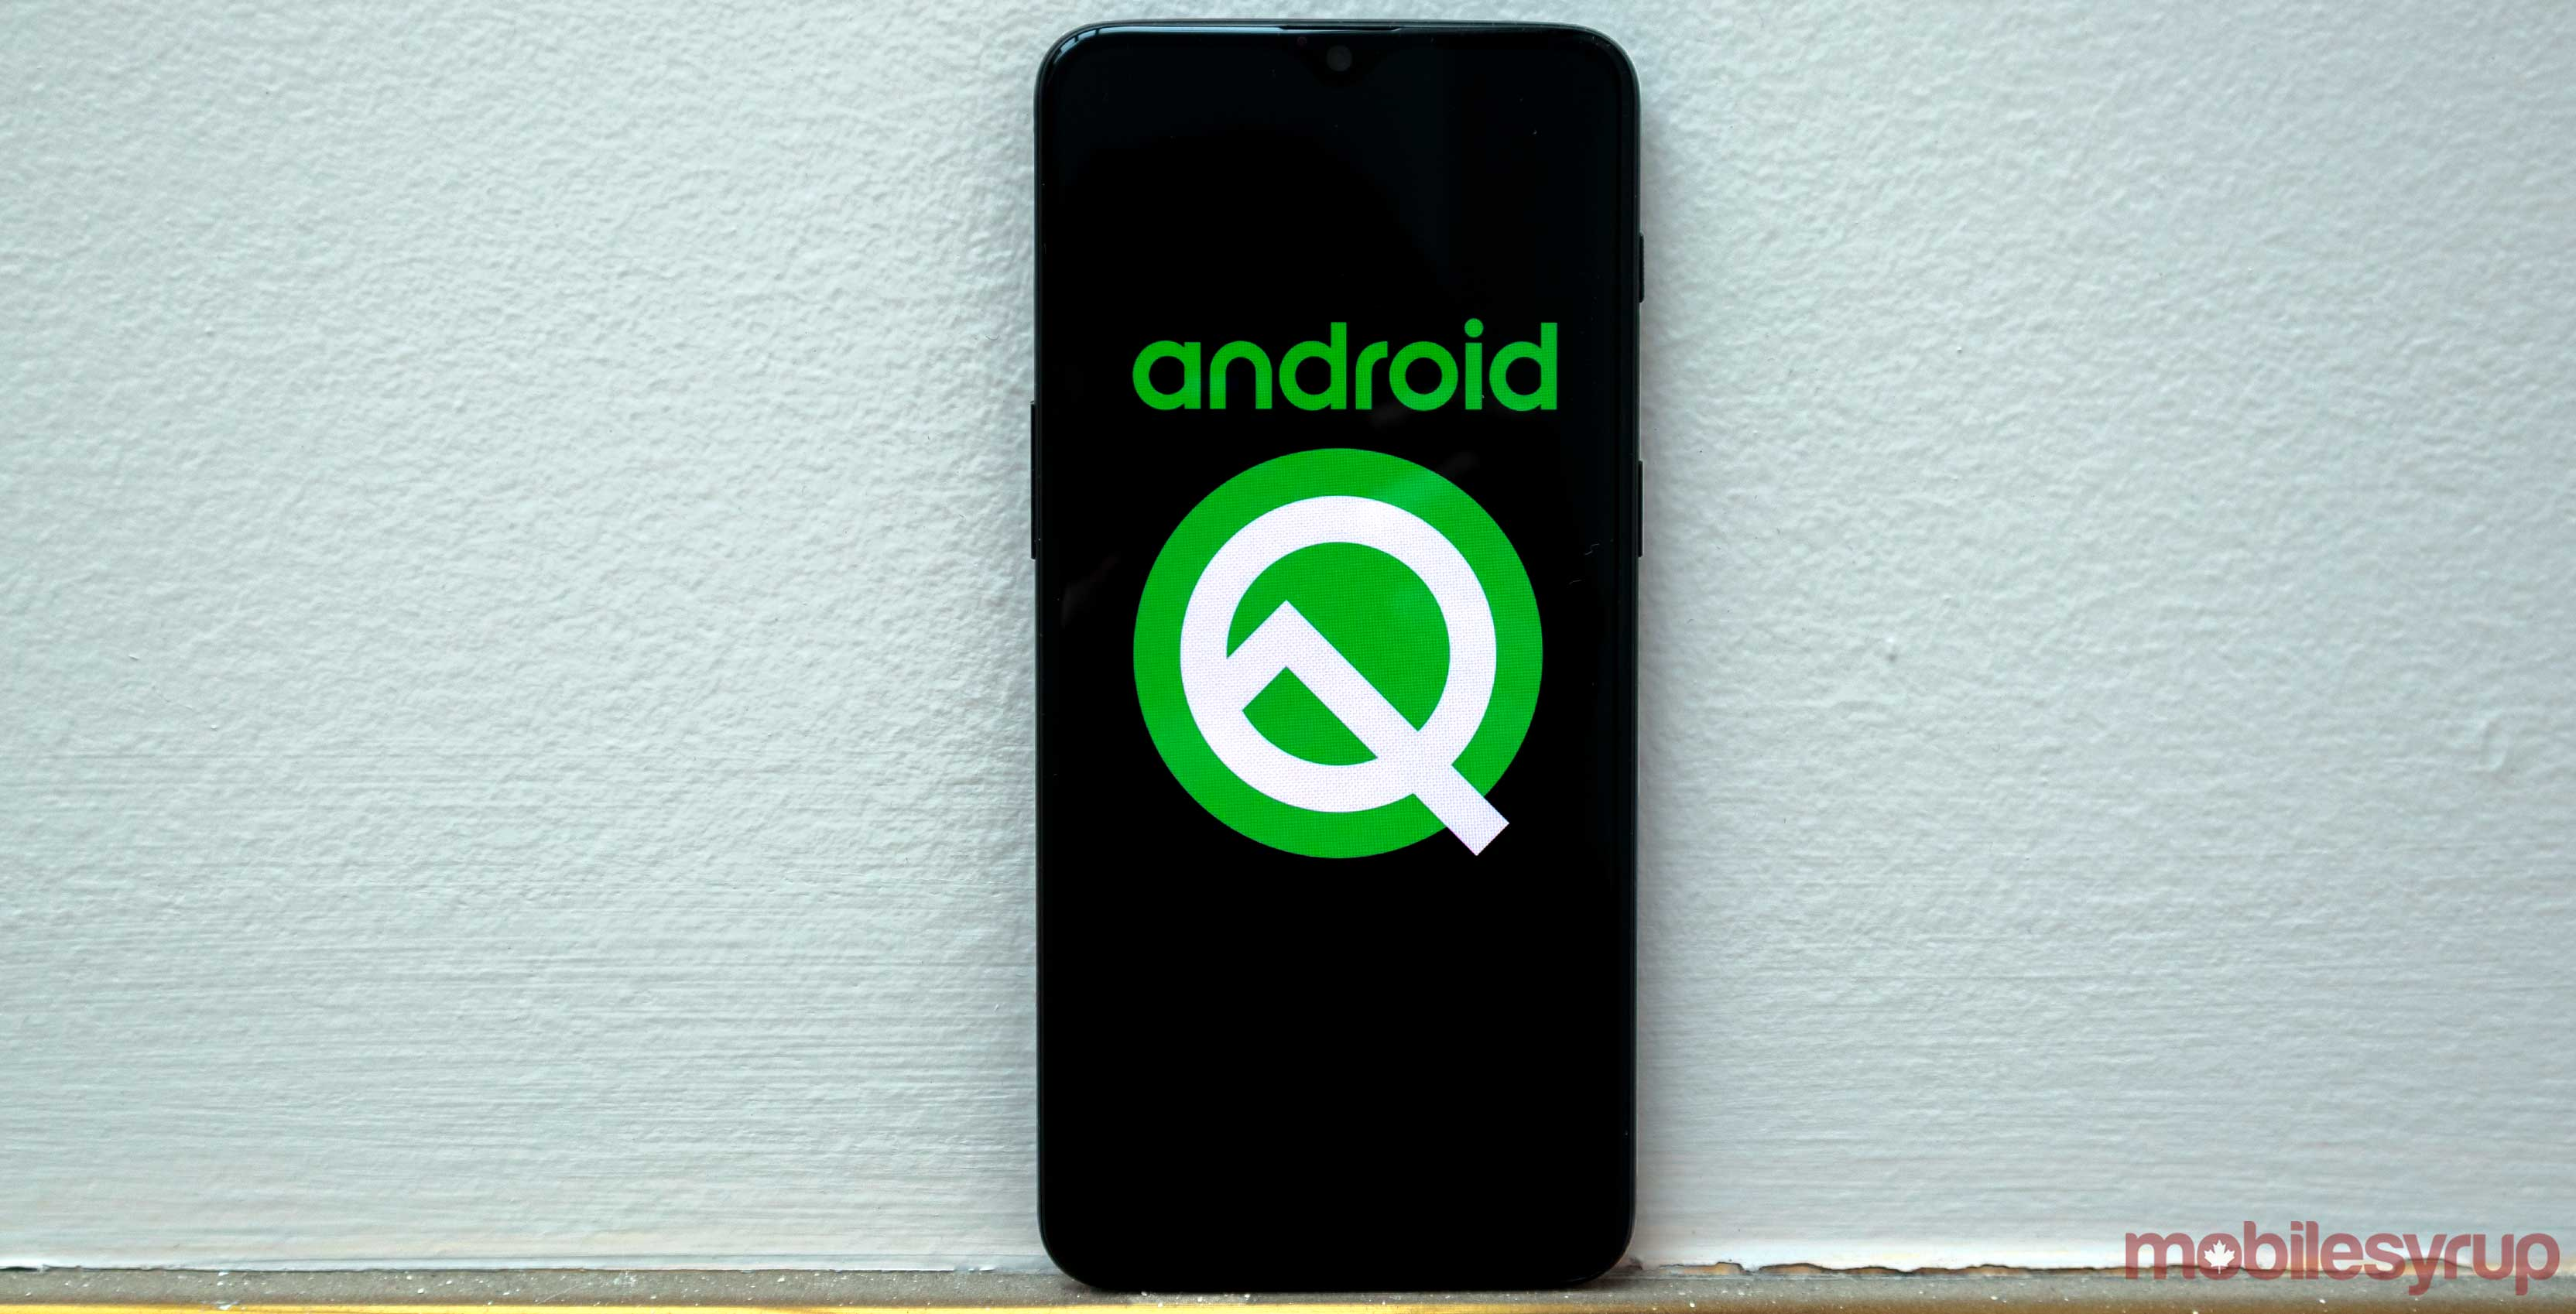 Android Q replaces the back button with a side swipe gesture